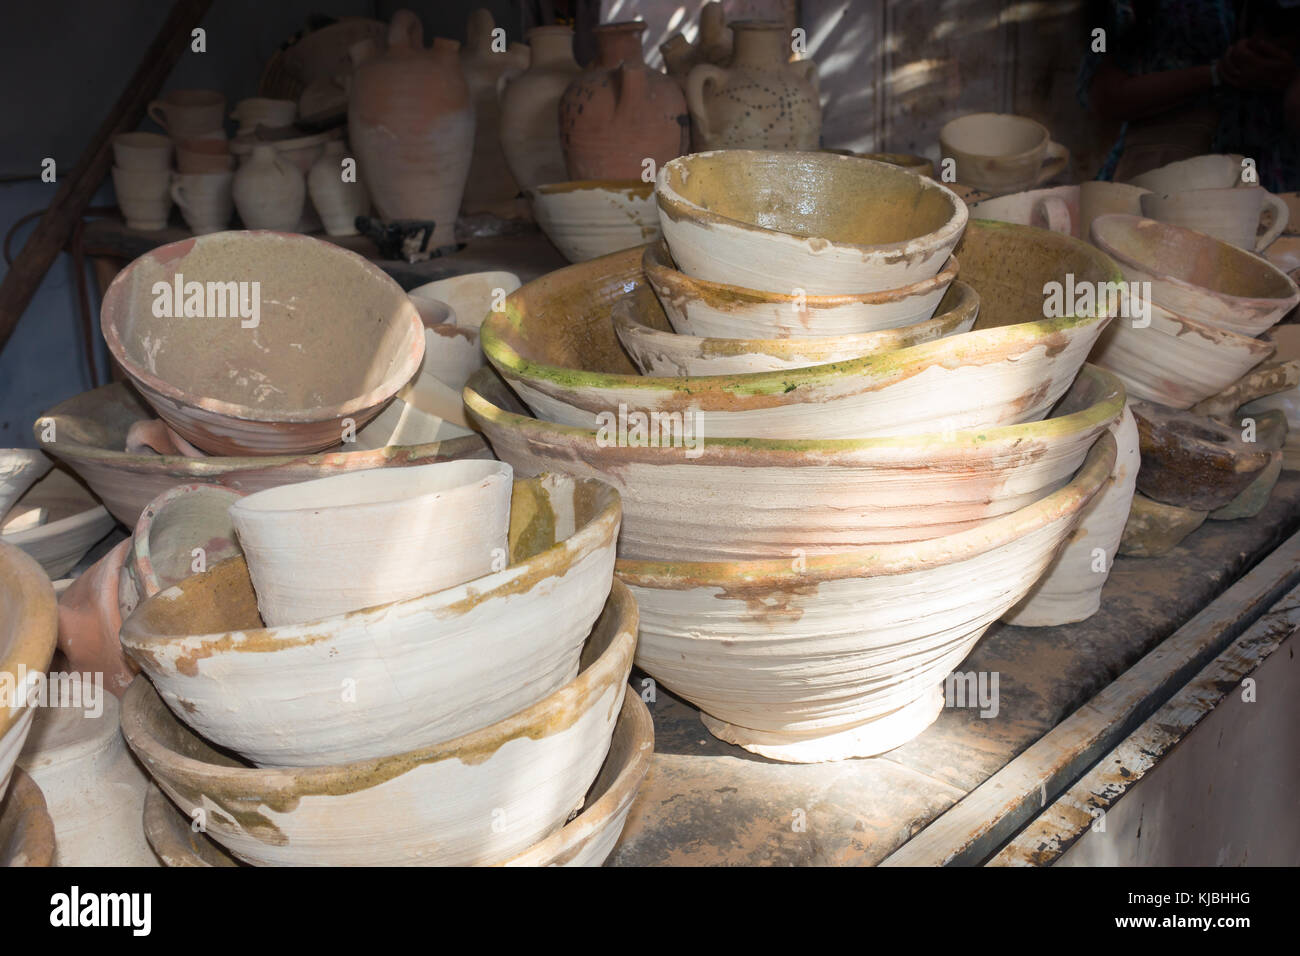 Moroccan vase stock photos moroccan vase stock images alamy closeup of handmade clay bowls pots and vases at a market stall in morocco reviewsmspy